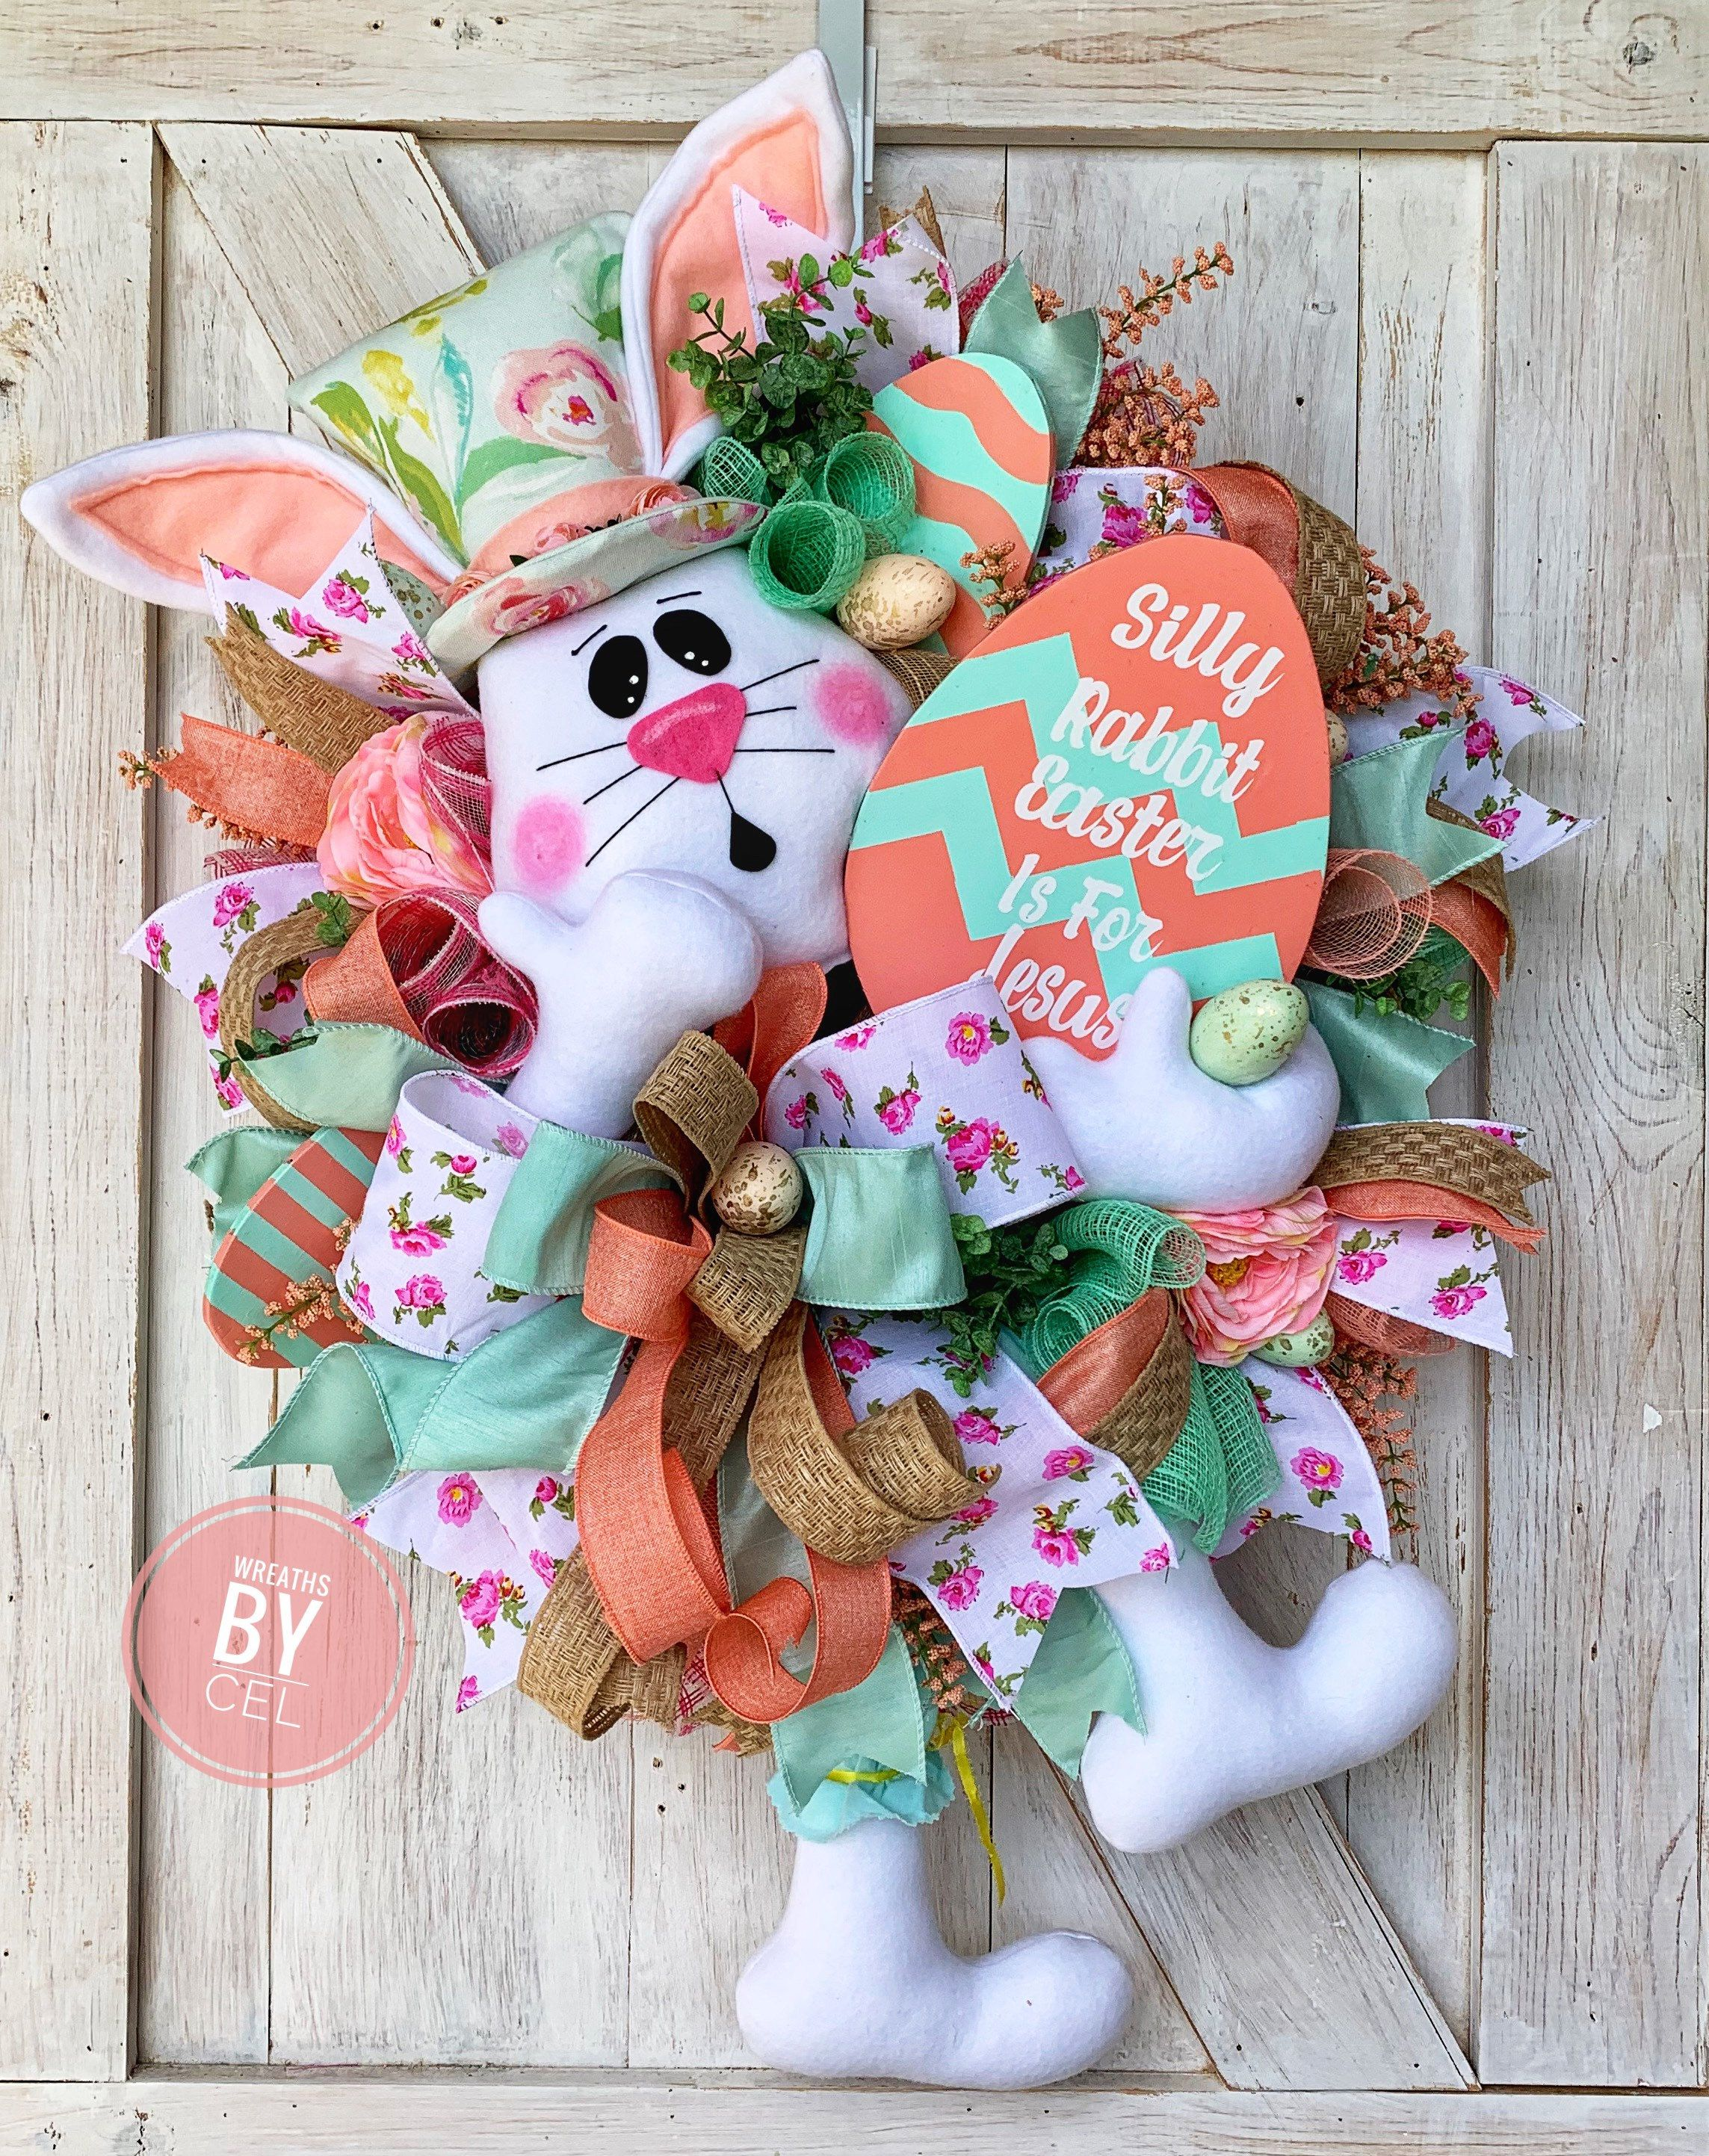 Photo of Easter Wreath, Easter Wreath for Front Door, Spring Wreath, Easter Bunny Wreath, Silly Rabbit Easter Is For Jesus, Easter Rabbit Wreath